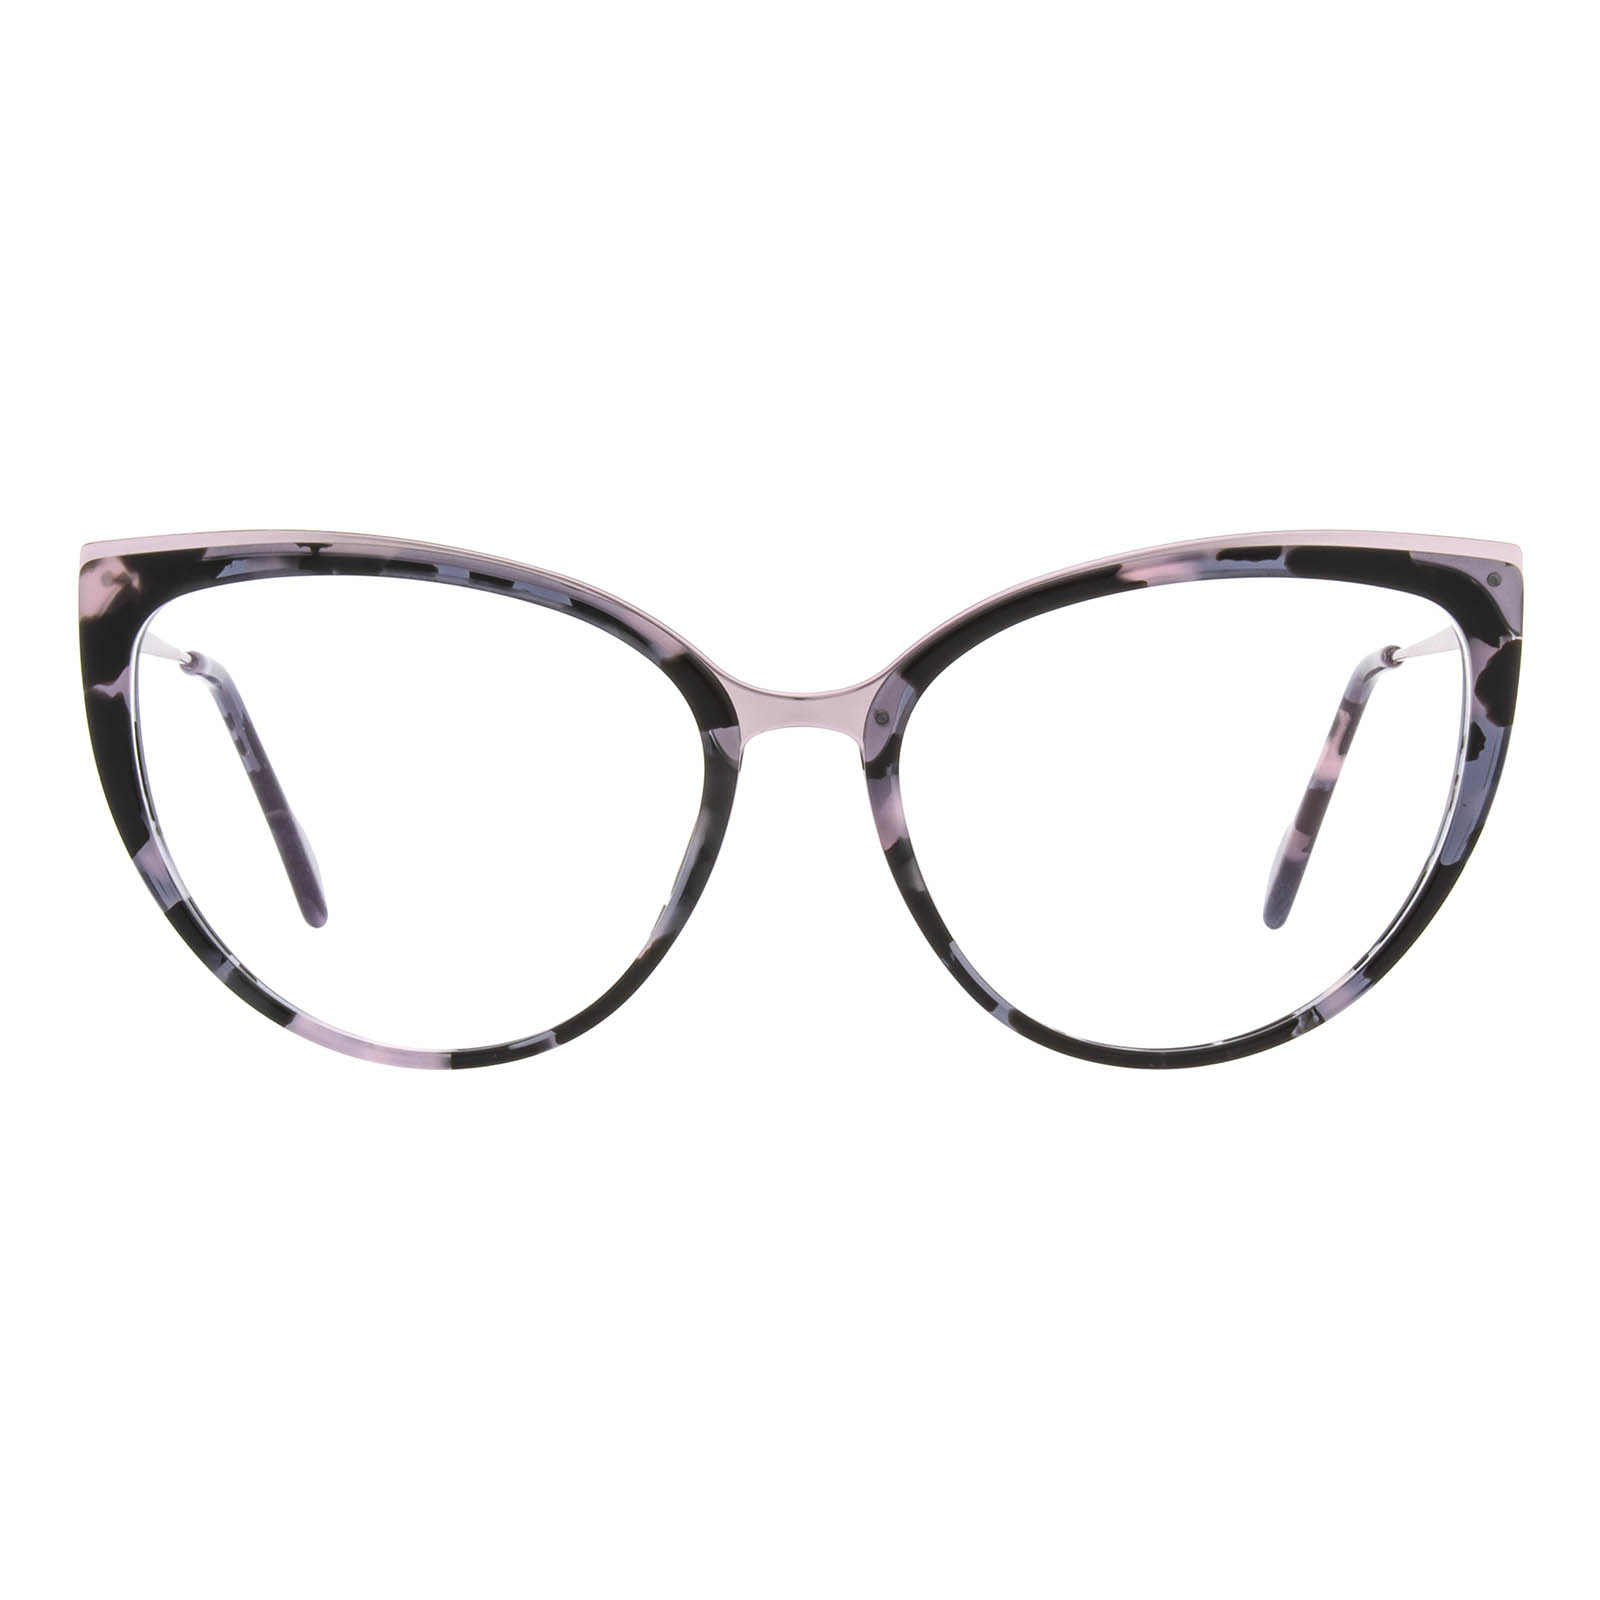 ANDY WOLF EYEWEAR_CAMPBELL_03_front